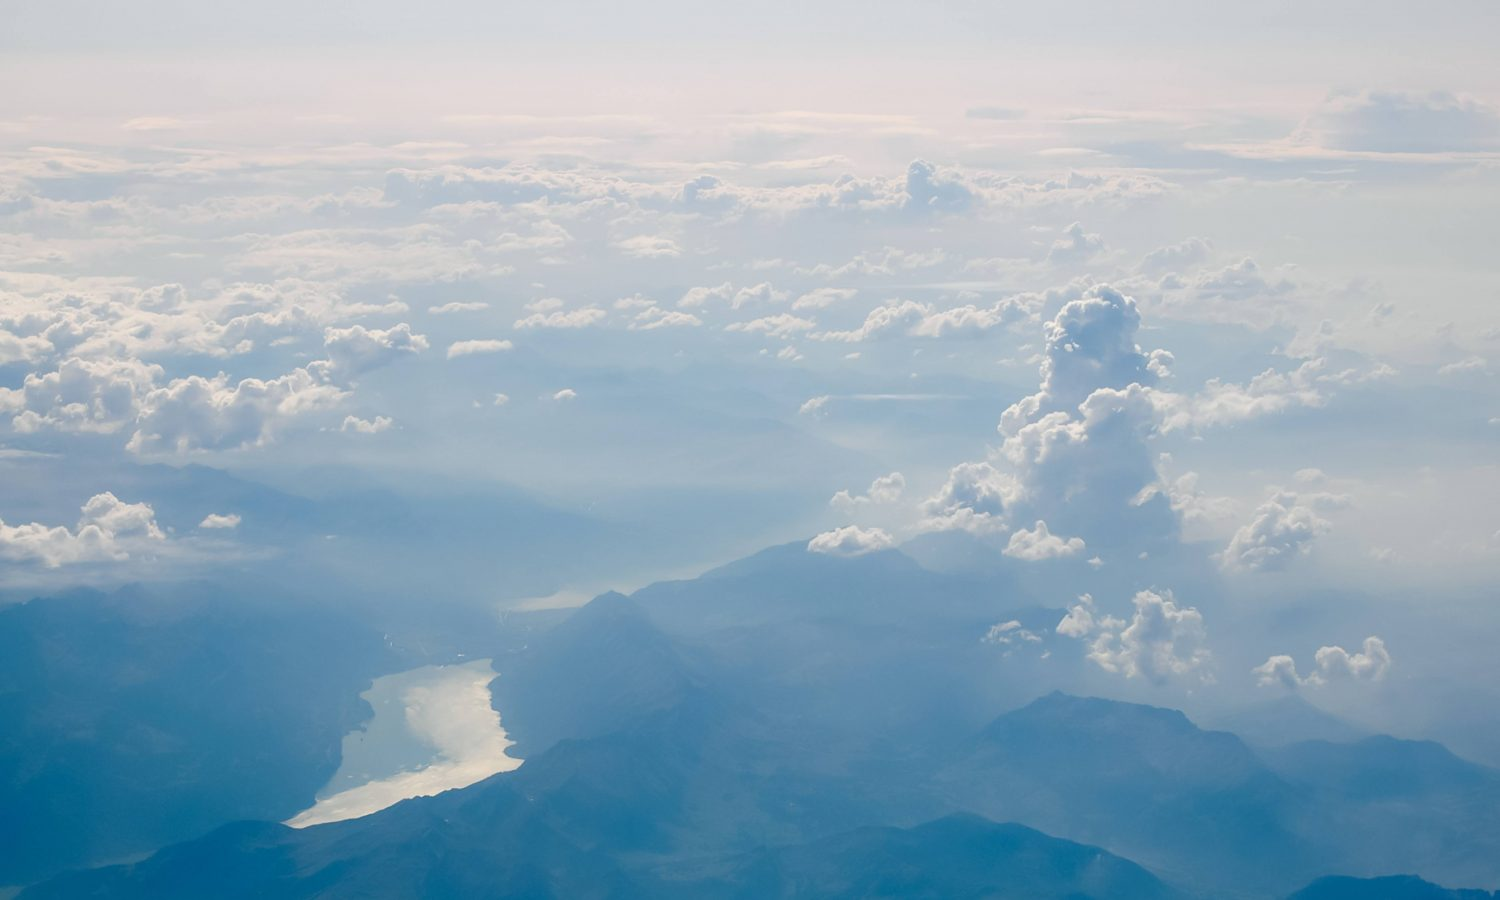 Aerial Sky and Mountains